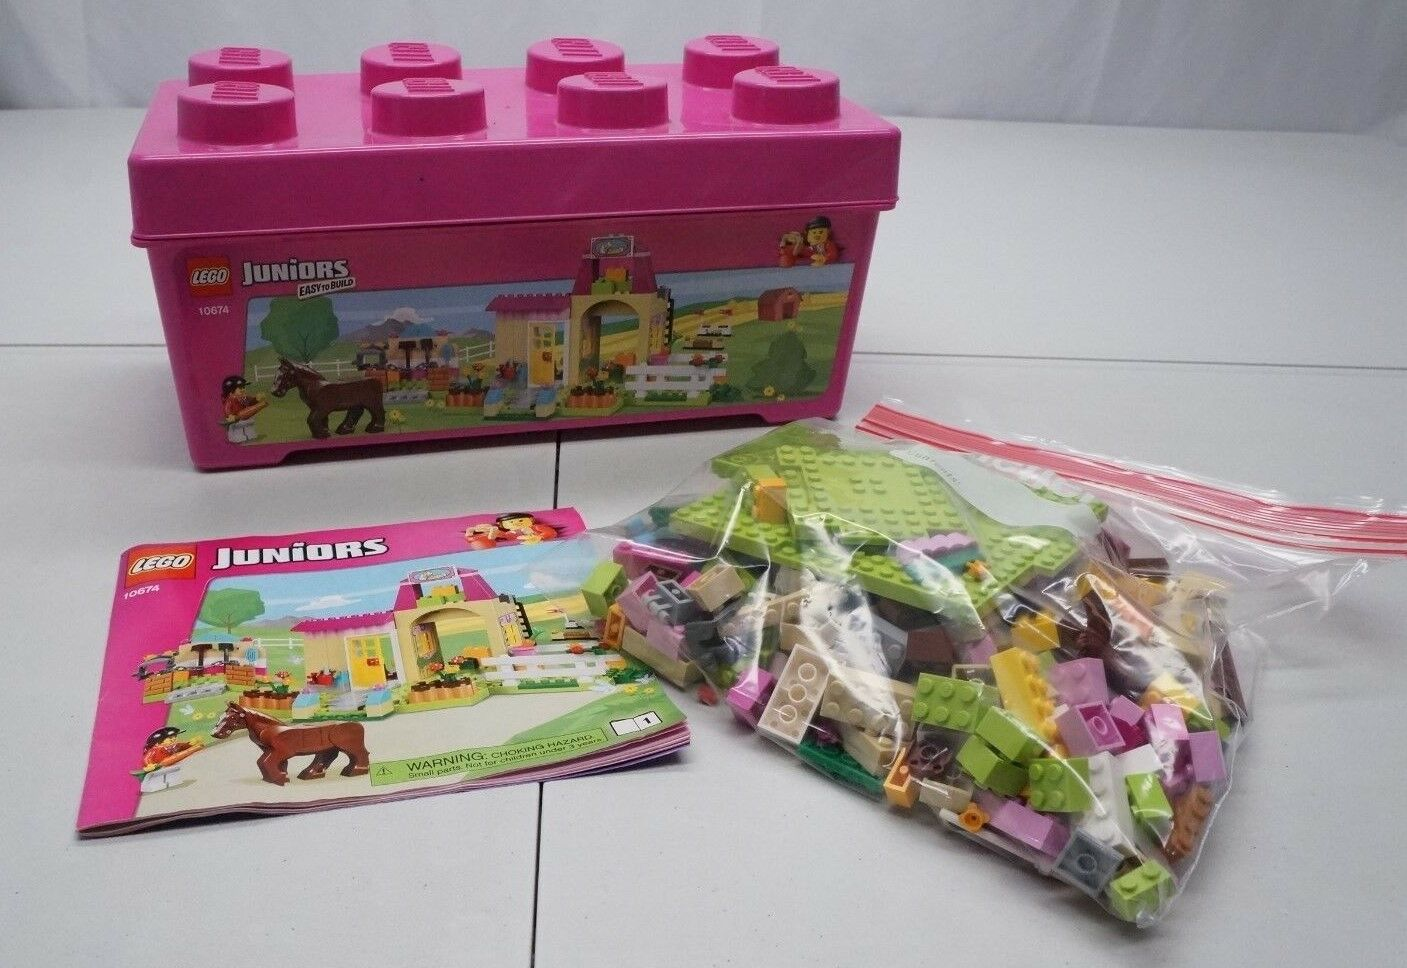 LEGO Juniors 10674 Pony Farm 312 pc Piece Partial Box Set